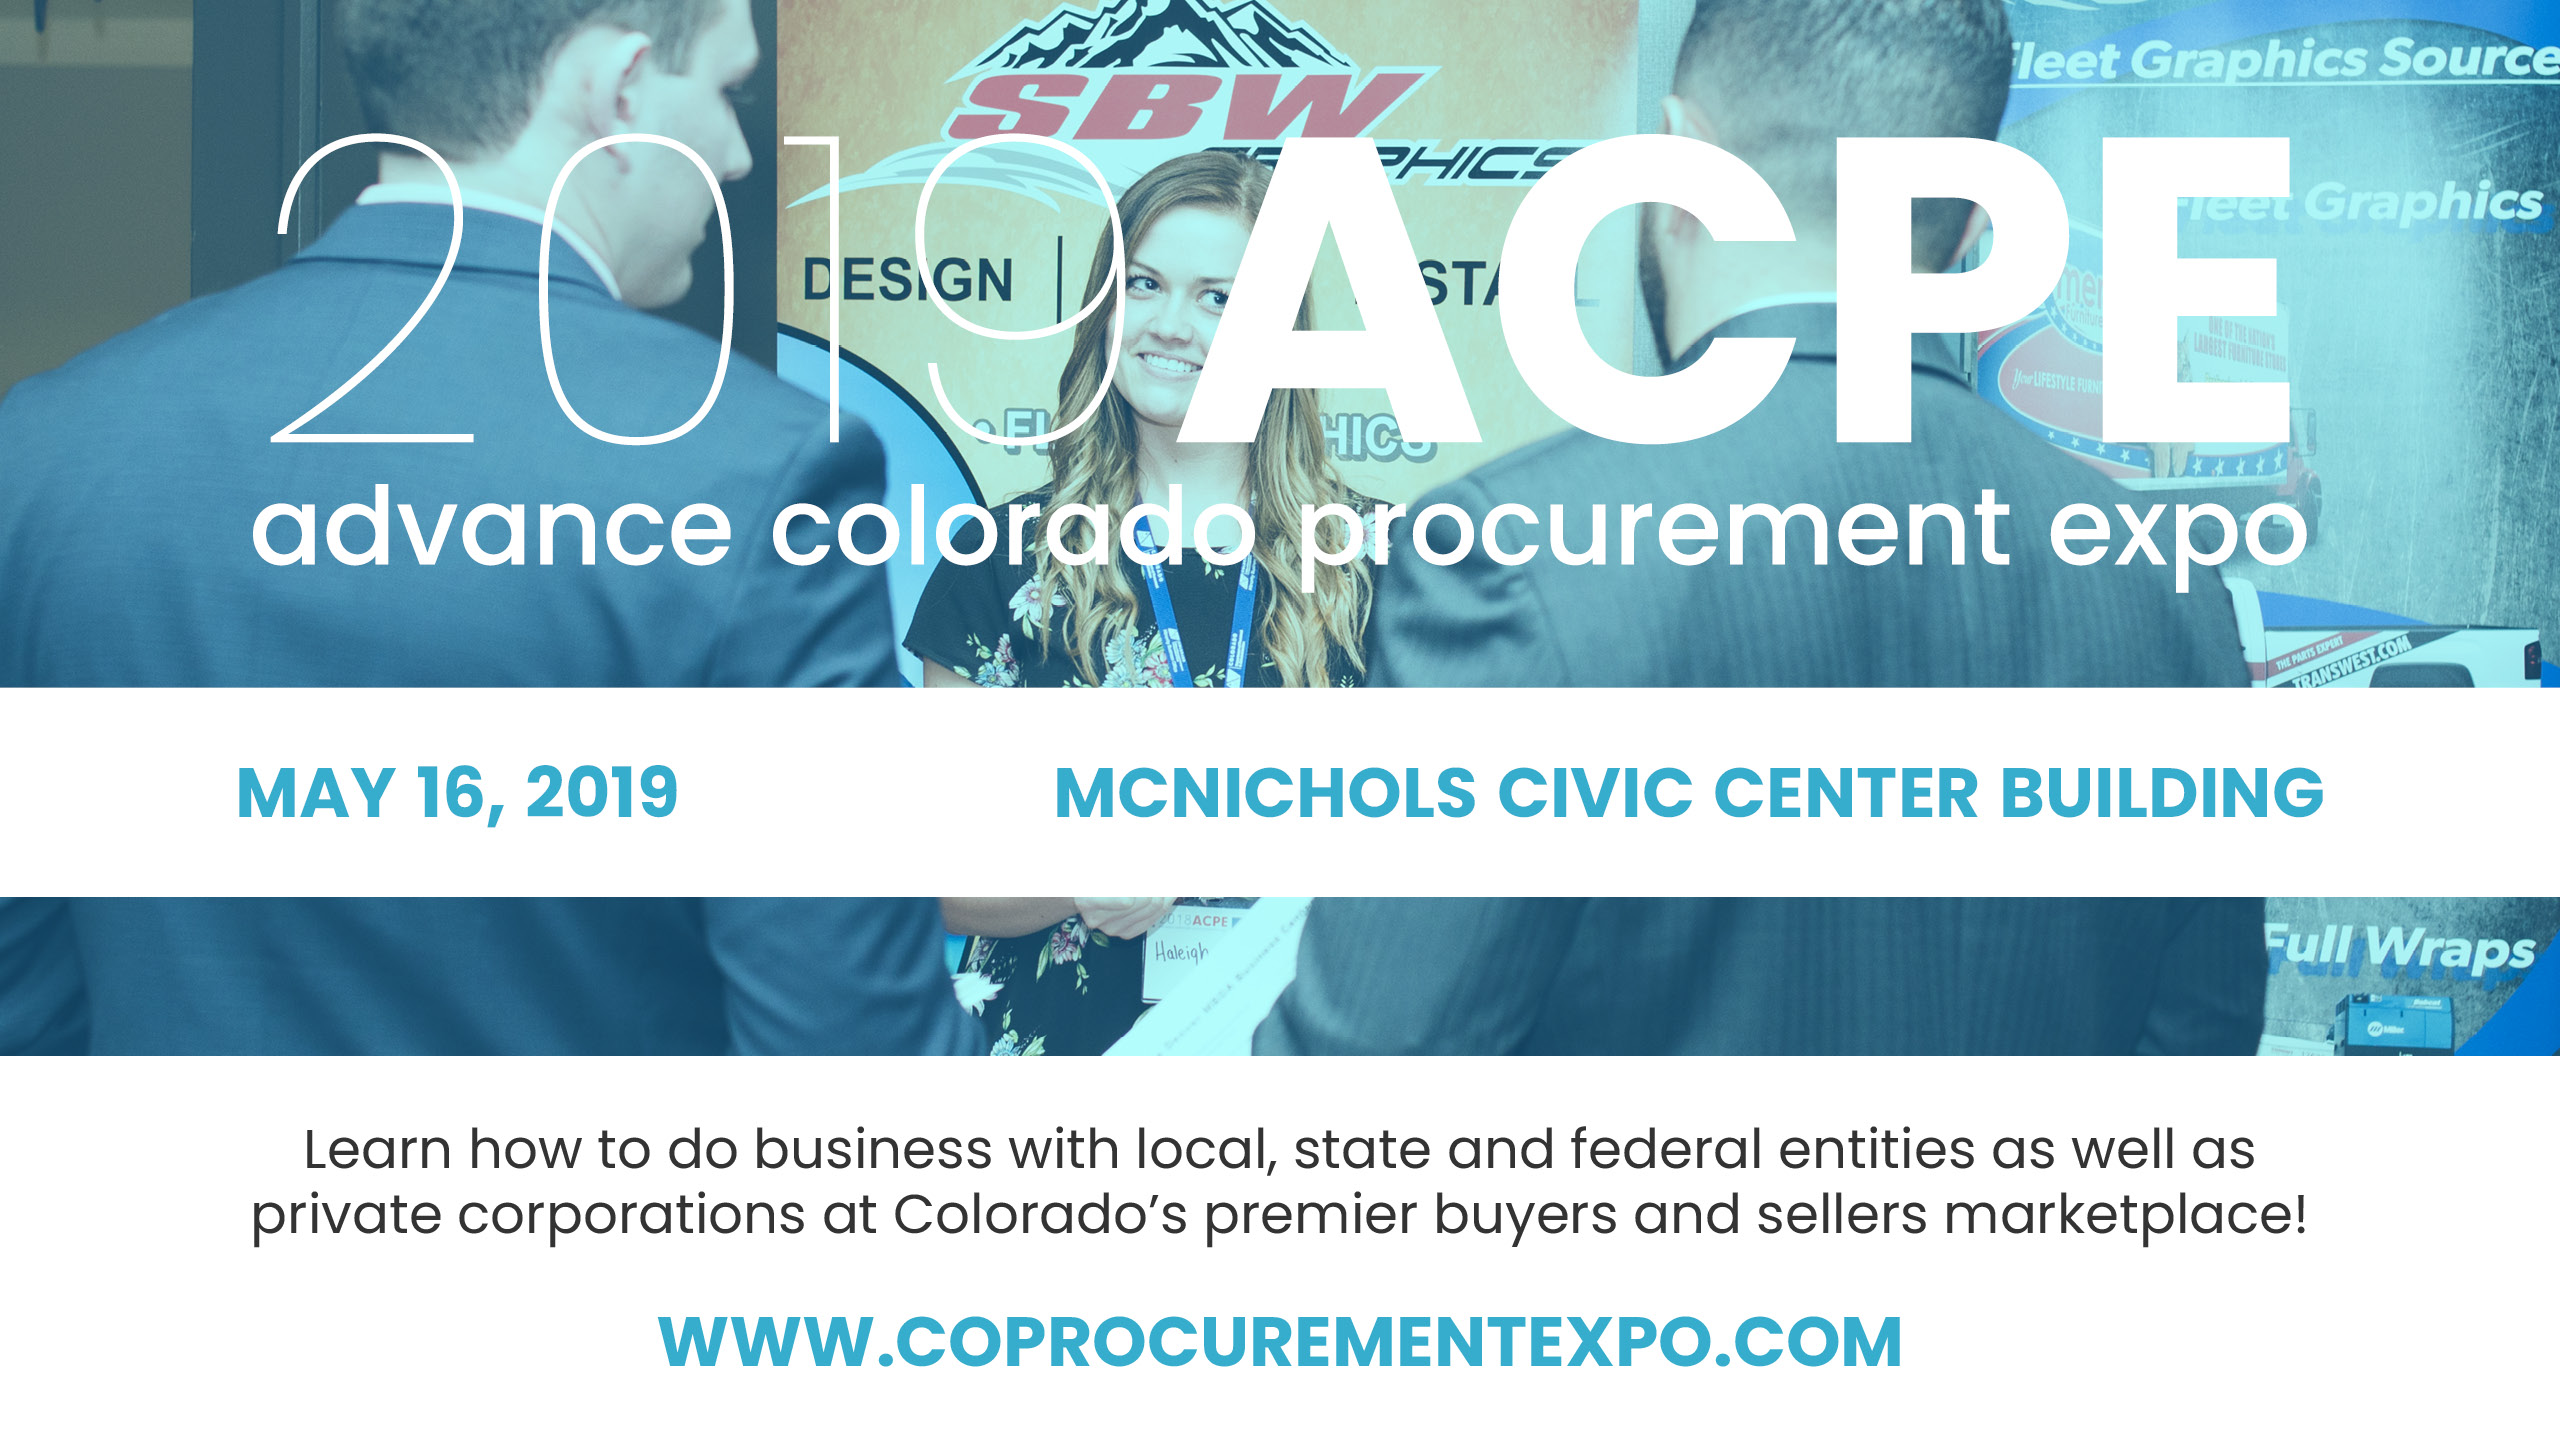 Advance Colorado Procurement Expo - Larimer Small Business